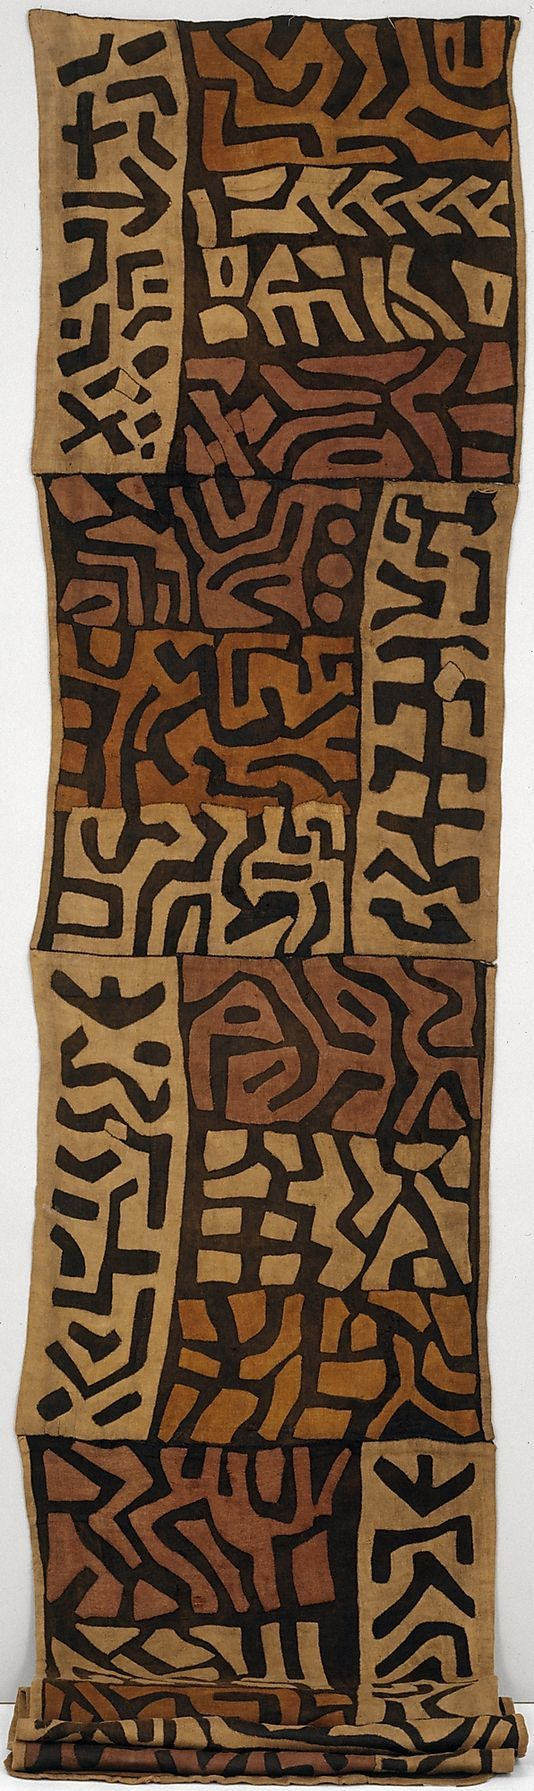 Saved from The Met Africa | Ceremonial Skirt (Ntchak) from the Kuba people (Bushoong group) from the Kasai River Region of the DR Congo | Raffia palm fiber with natural dyes | ca. late 19th century